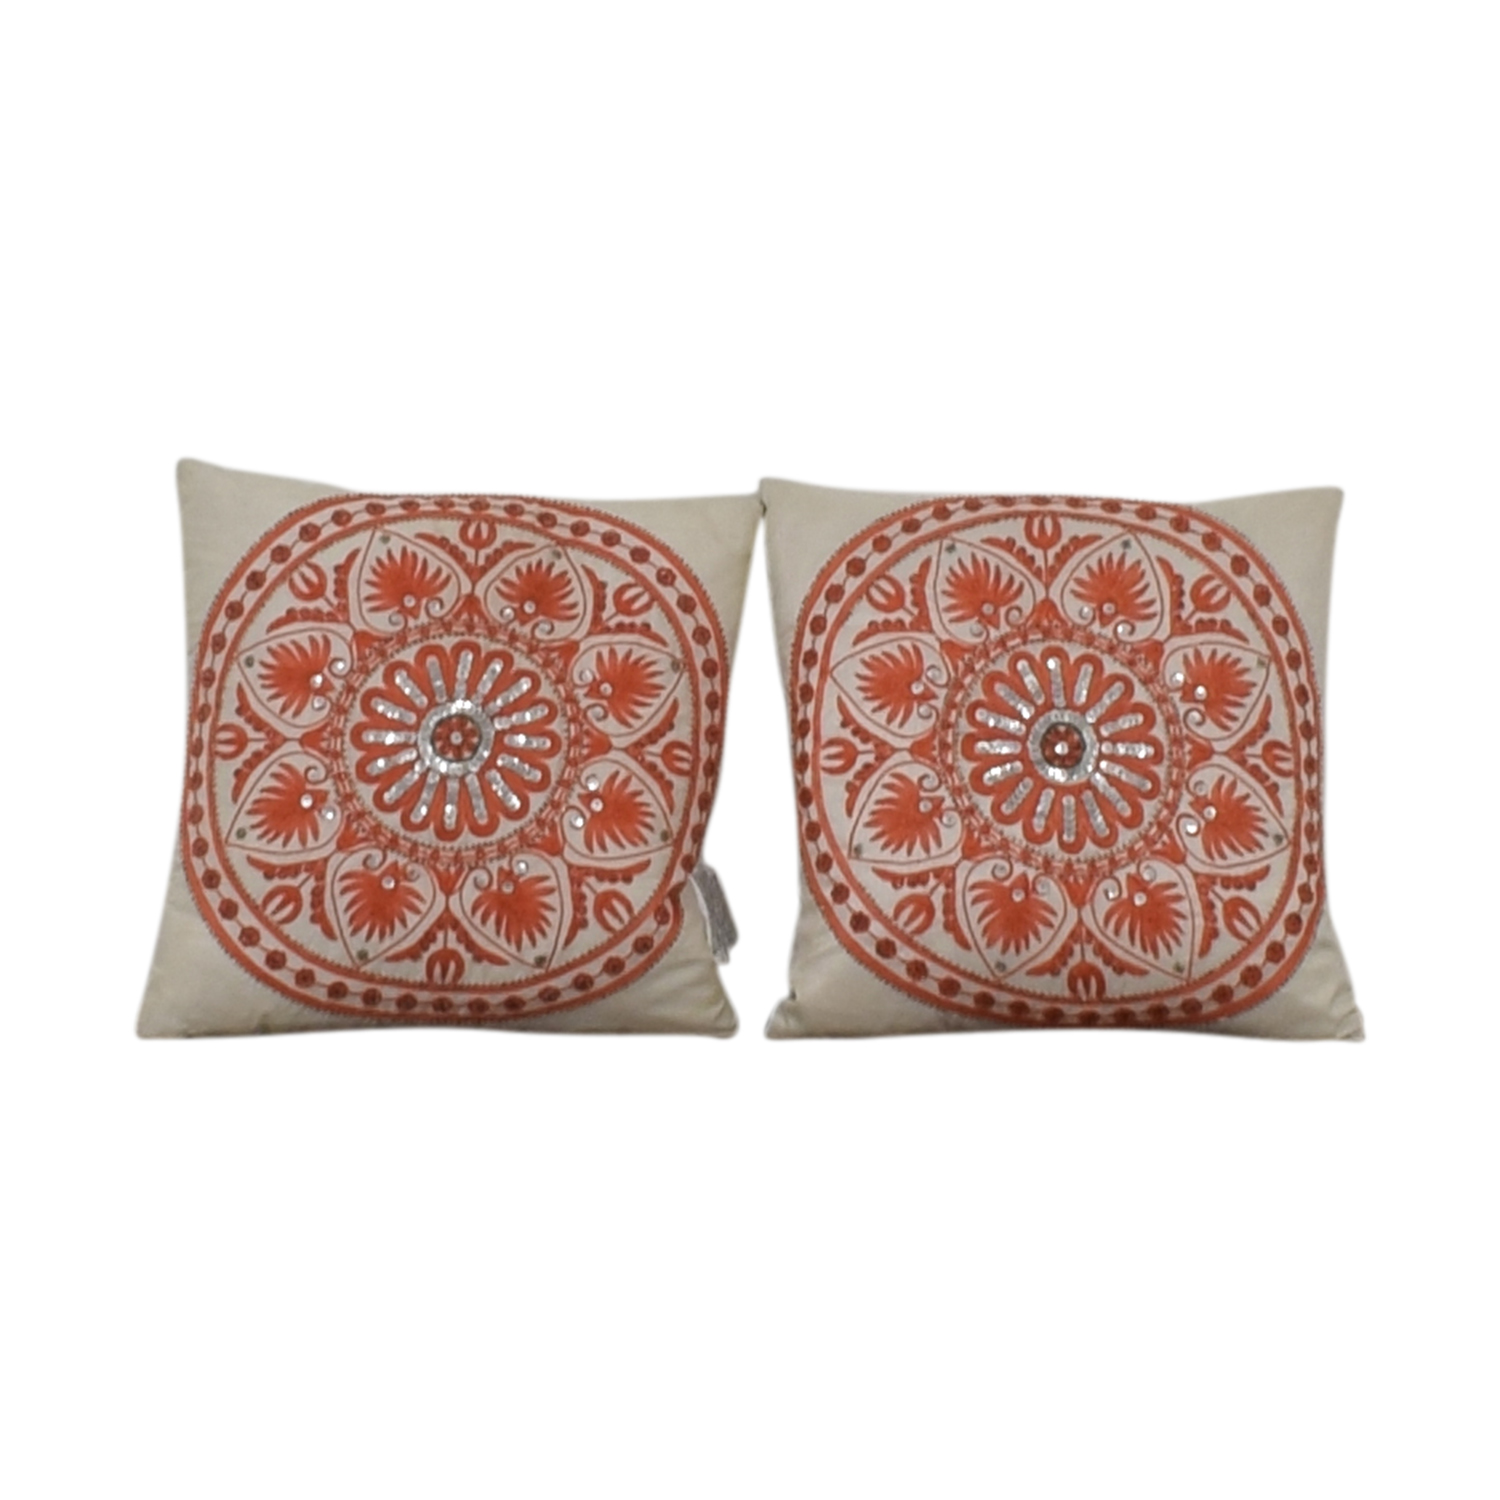 Macy's Macy's Orange Accent Pillows Decor